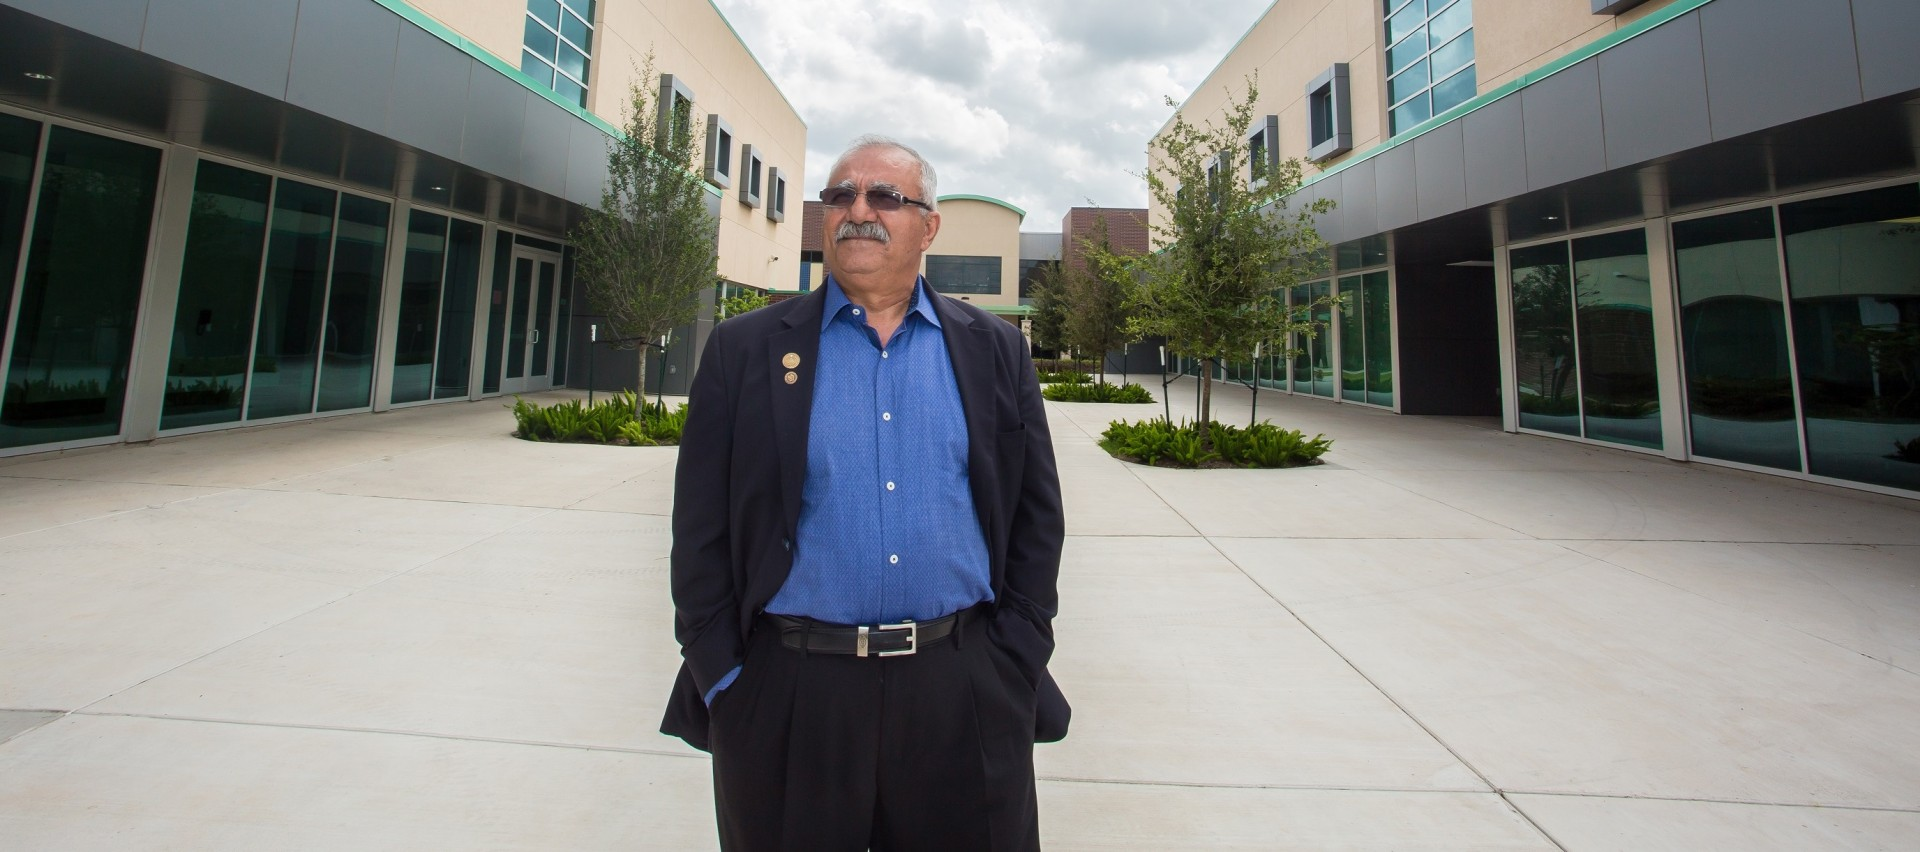 Dr. Esmaeili on Campus